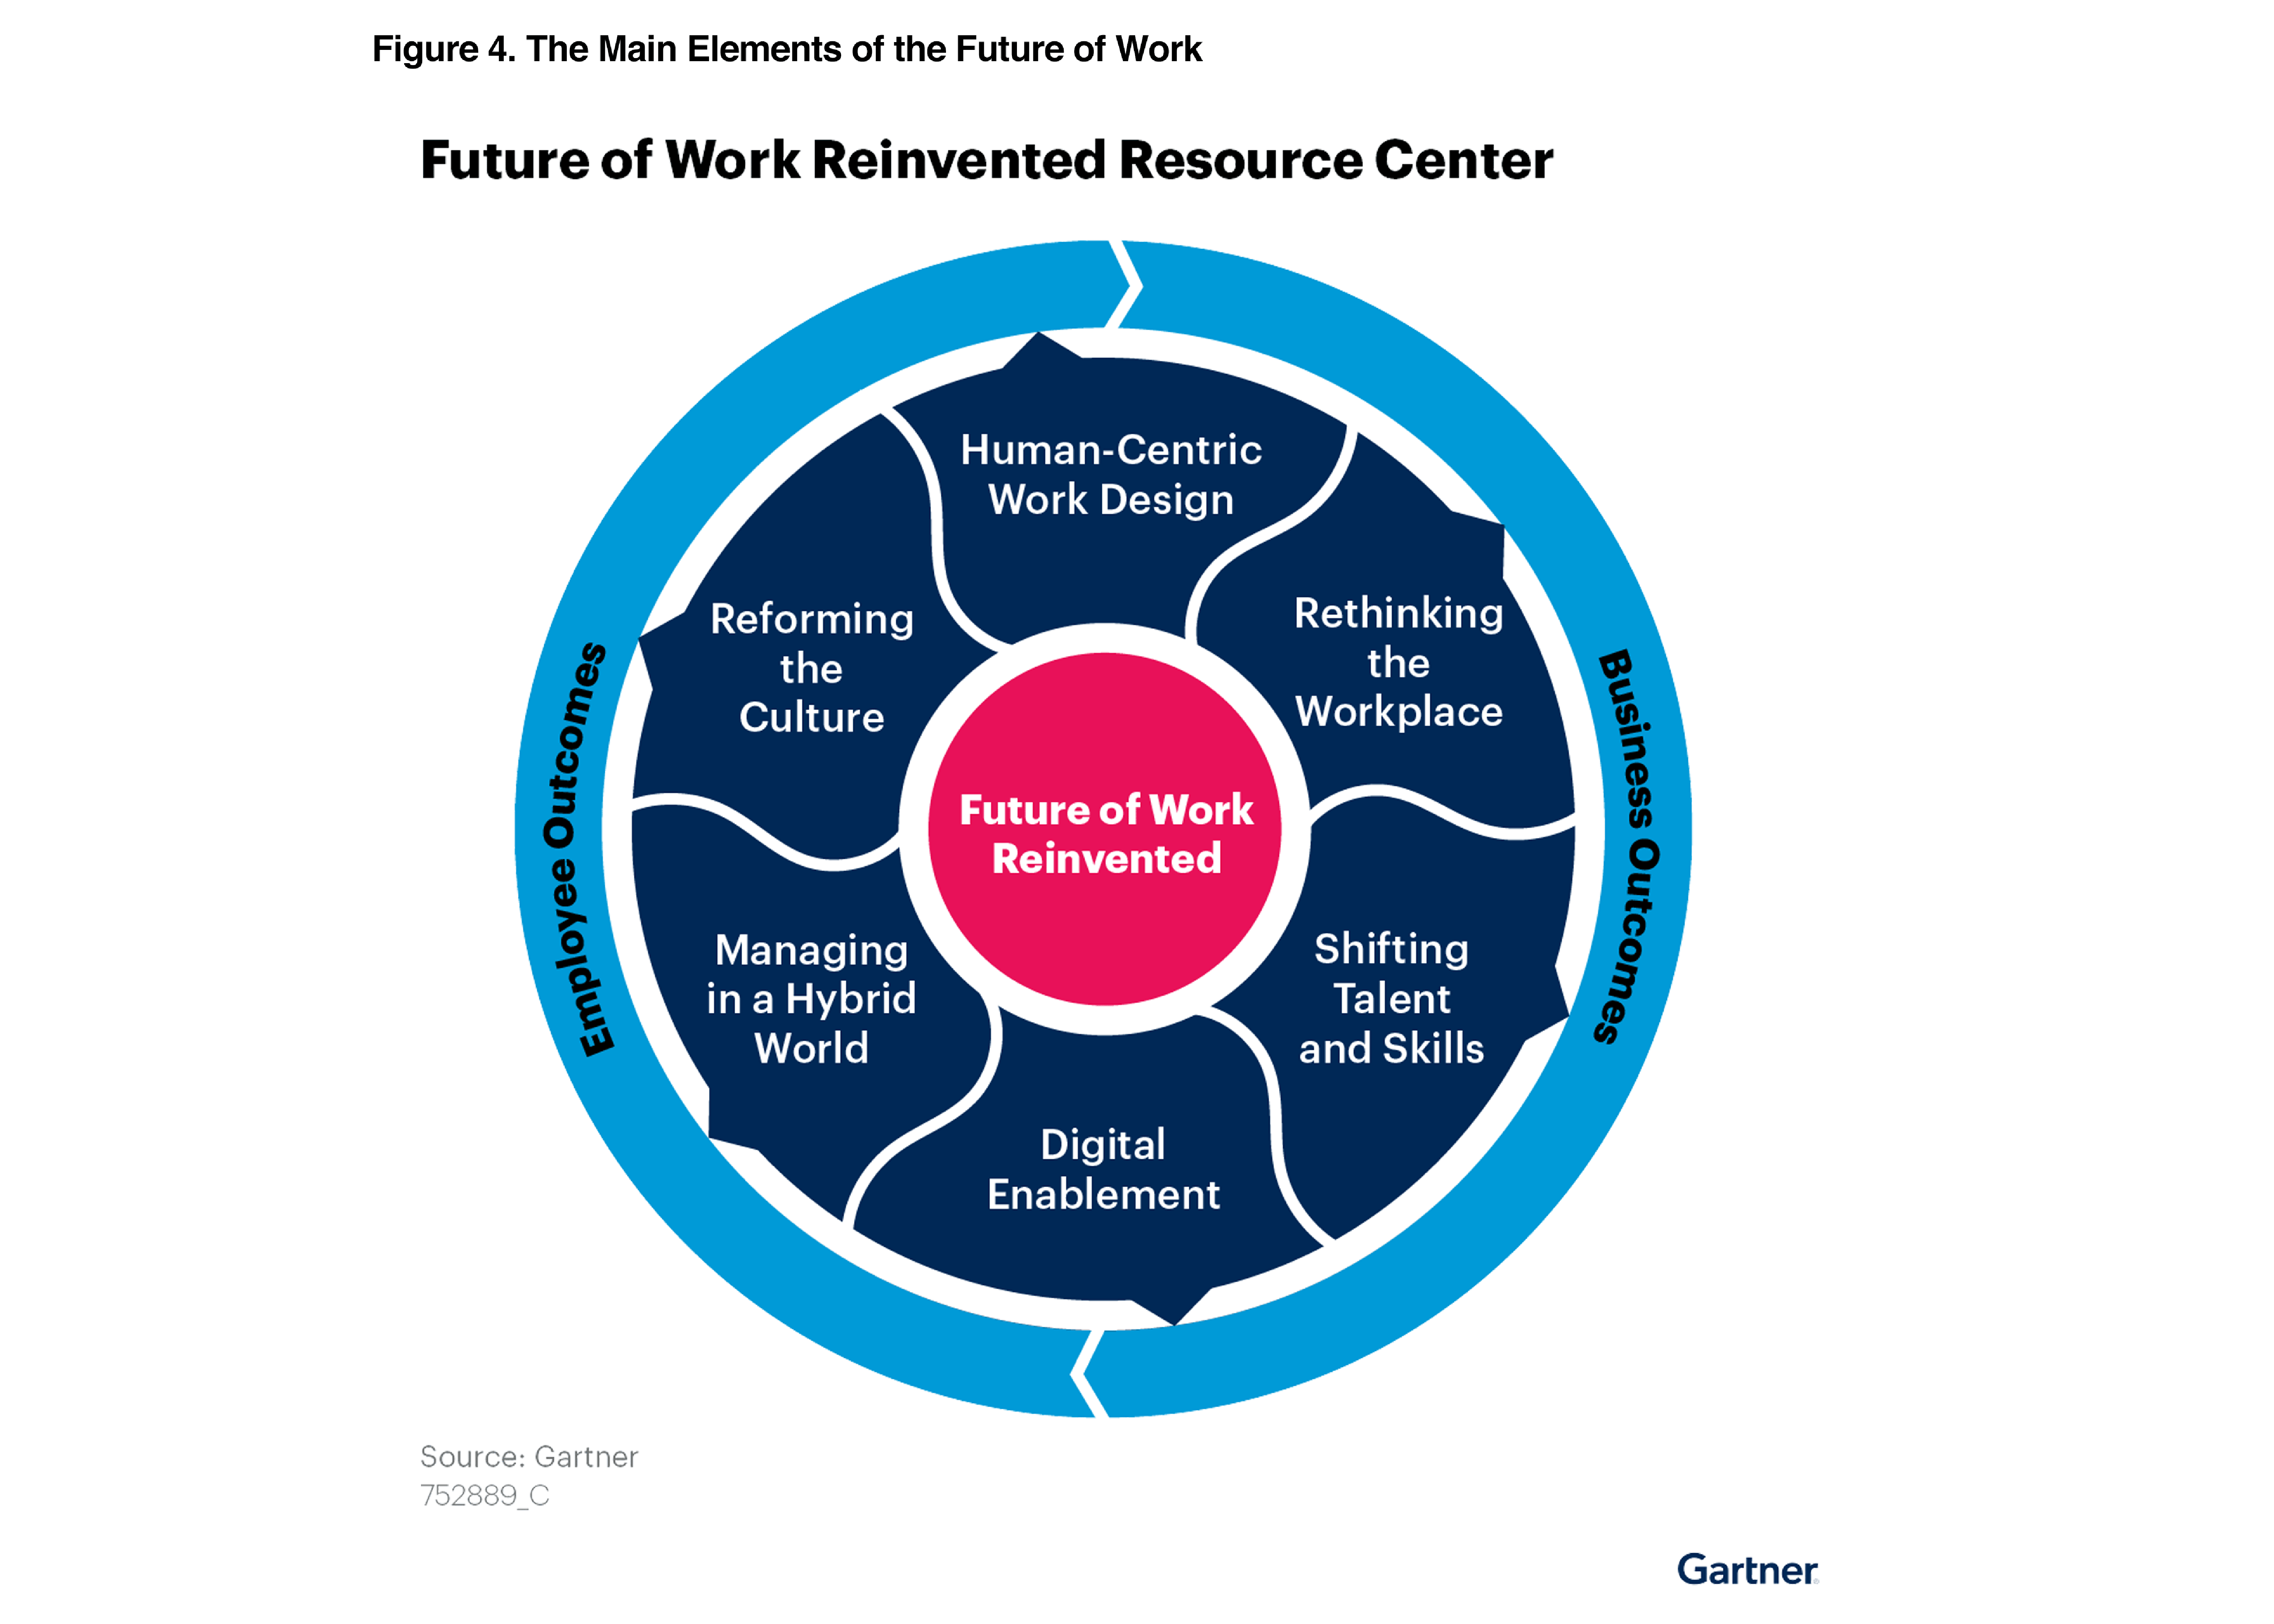 Future of Work Reinvented: Seizing This Golden Opportunity Requires 3 Actions